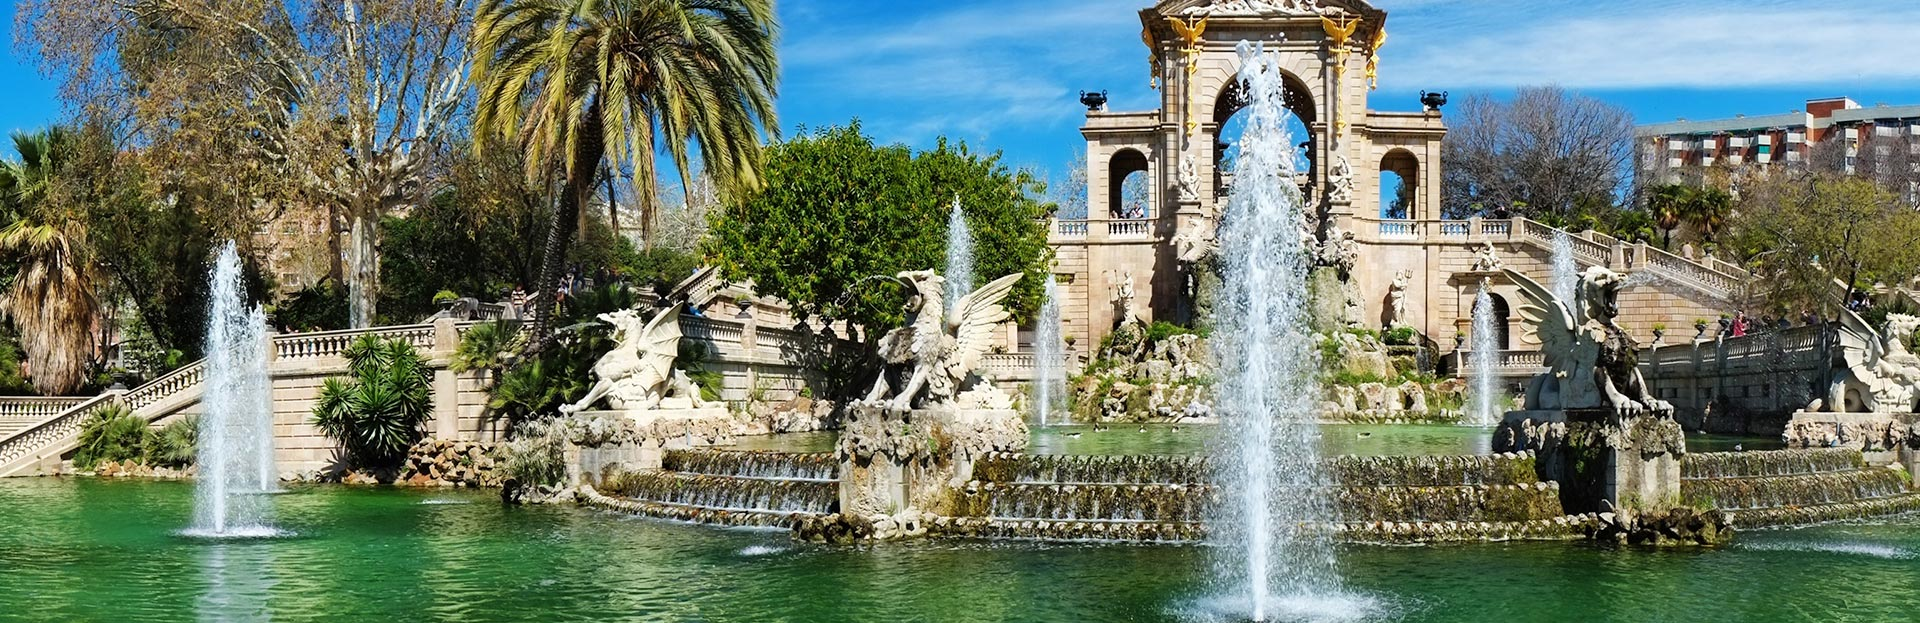 Spain Barcelona Fountain